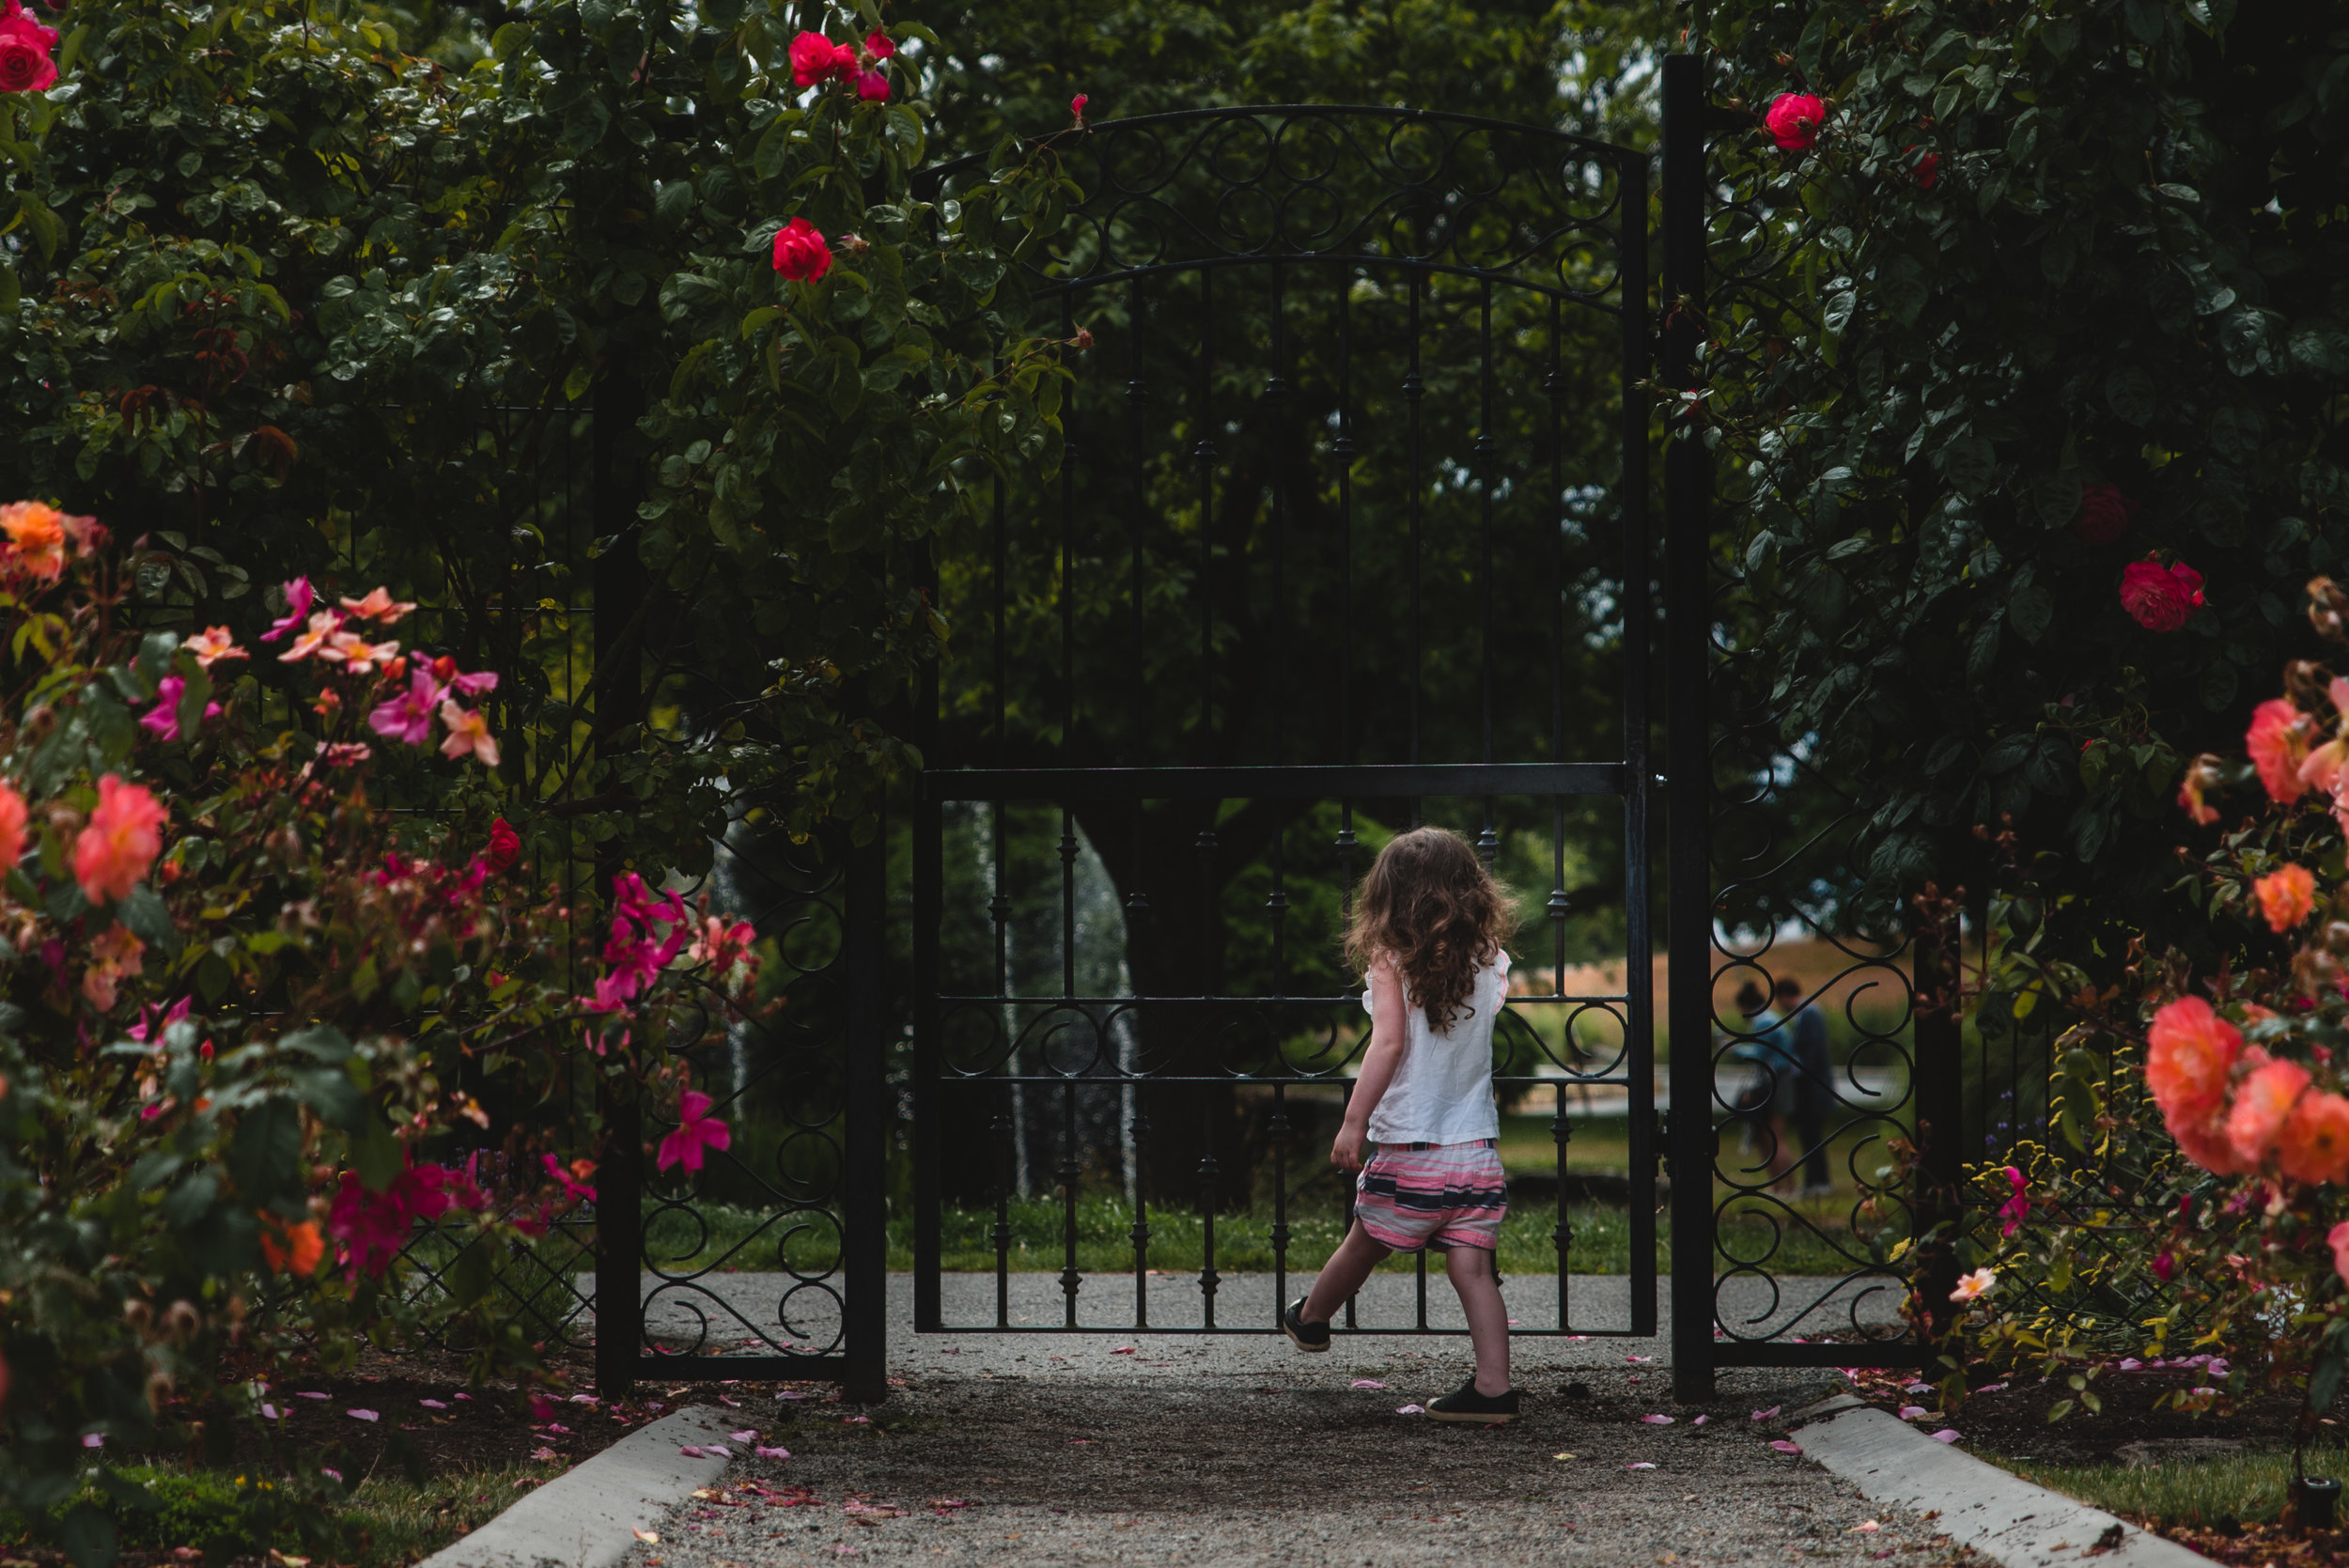 Beacon Hill Park Rose Garden Victoria BC Family Photographer.jpg